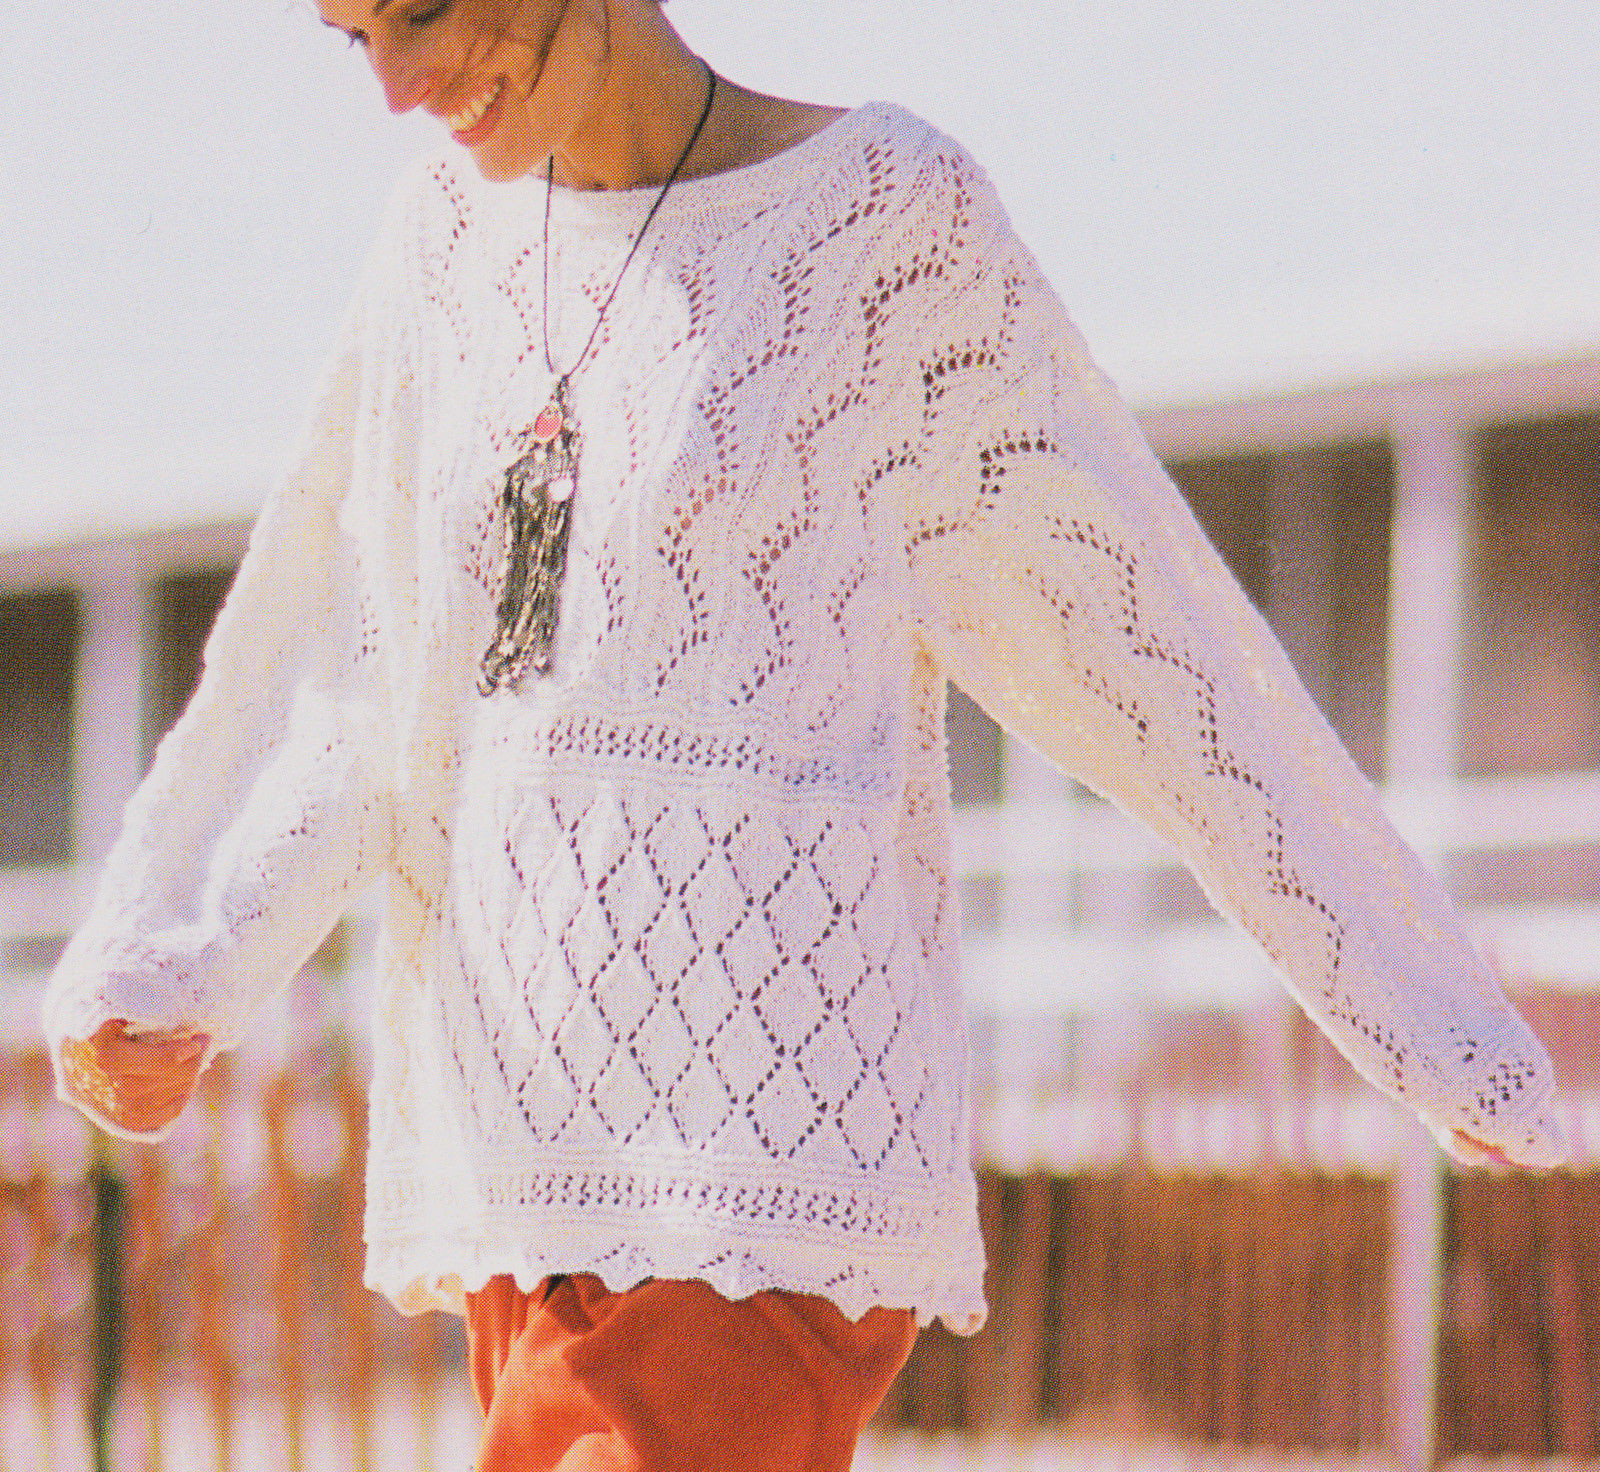 Lace Sampler Summer Sweater Knitting Pattern S M L in DK